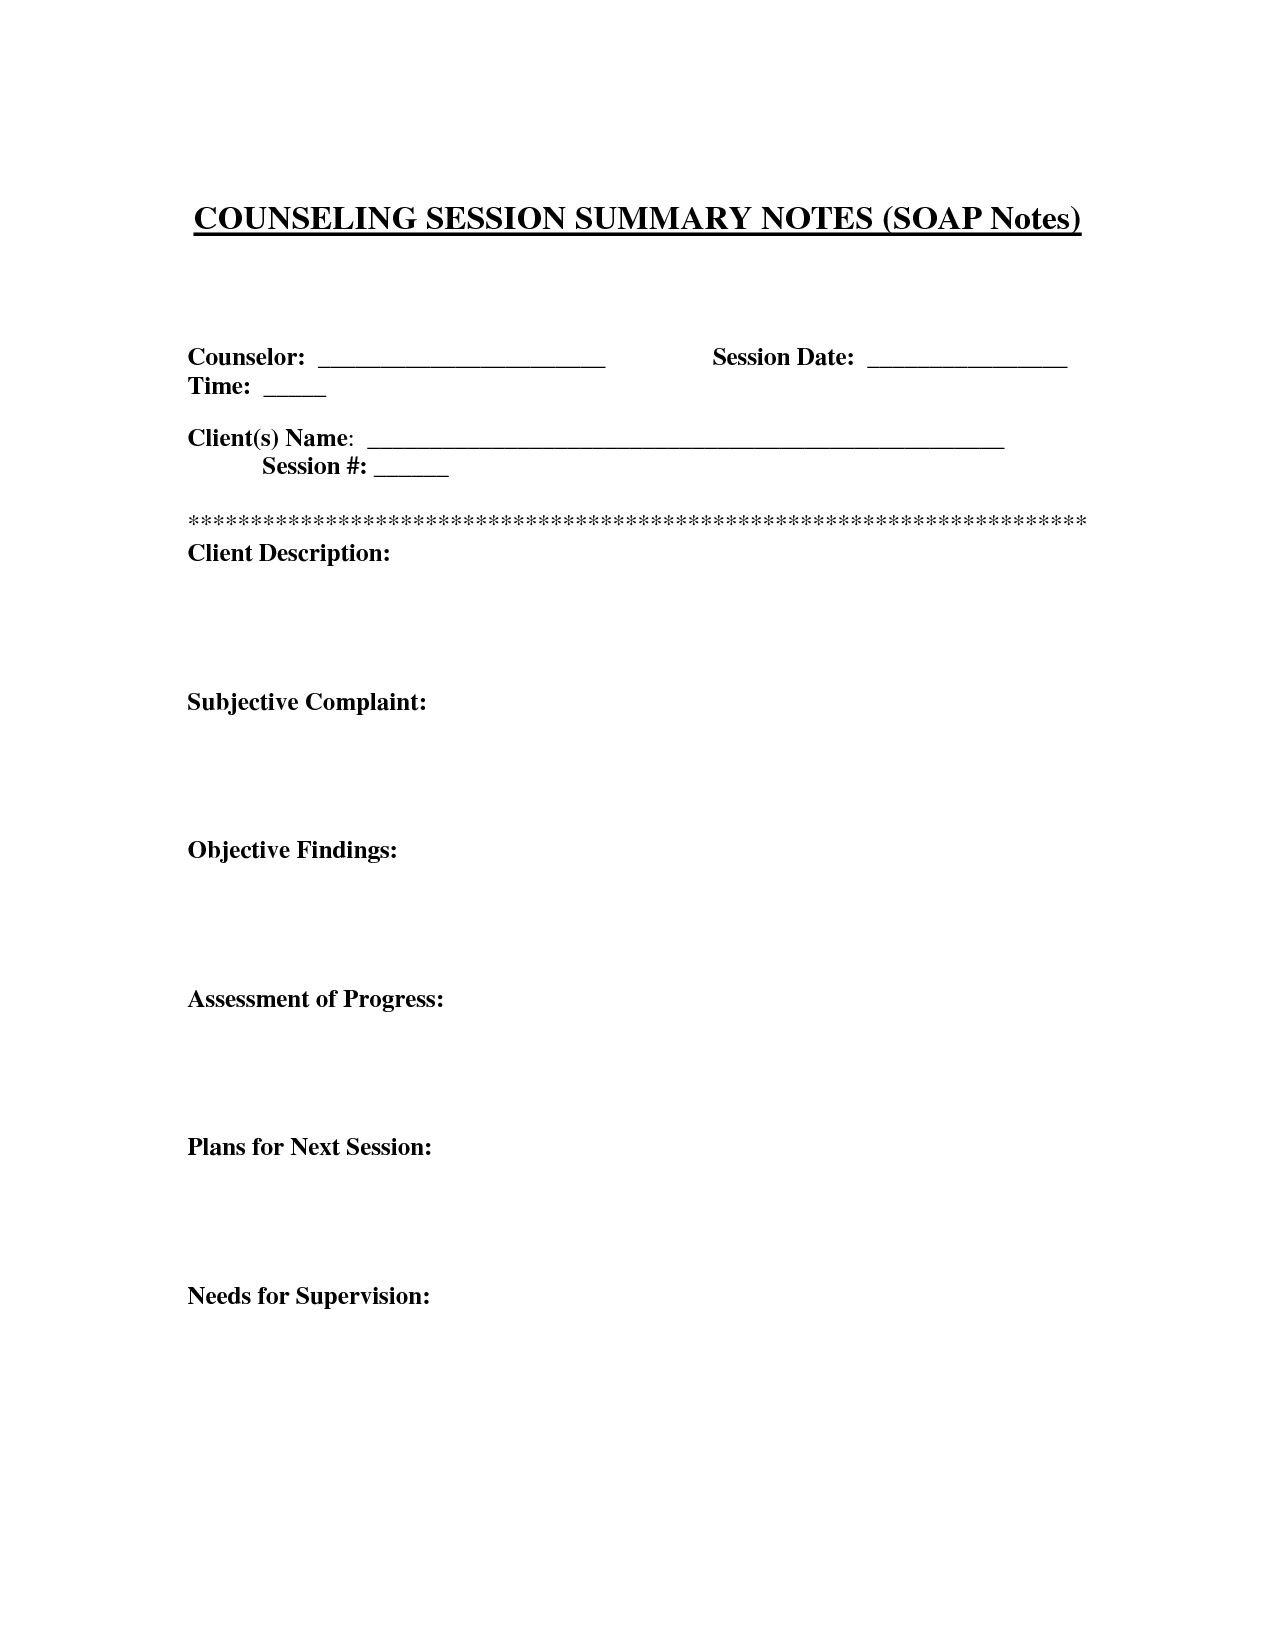 Counseling Session Notes Template Soap Note Treatment